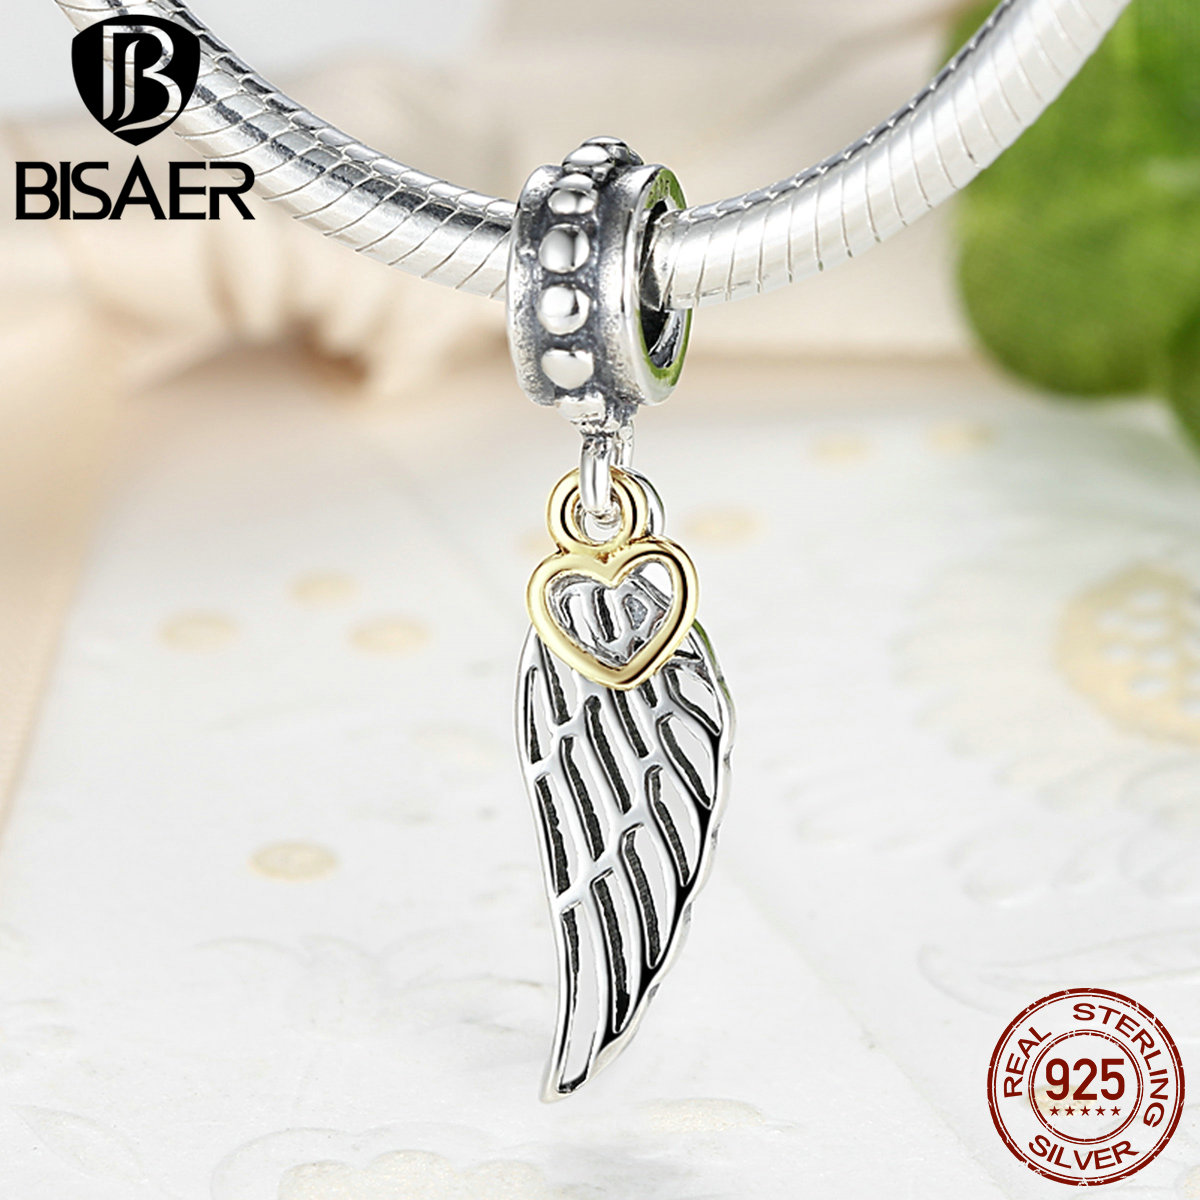 100% 925 Sterling Silver Angel Wing Pendant & Charm Fit Pandora Bracelet  With Glimmering Heart Twotone Dangle As047